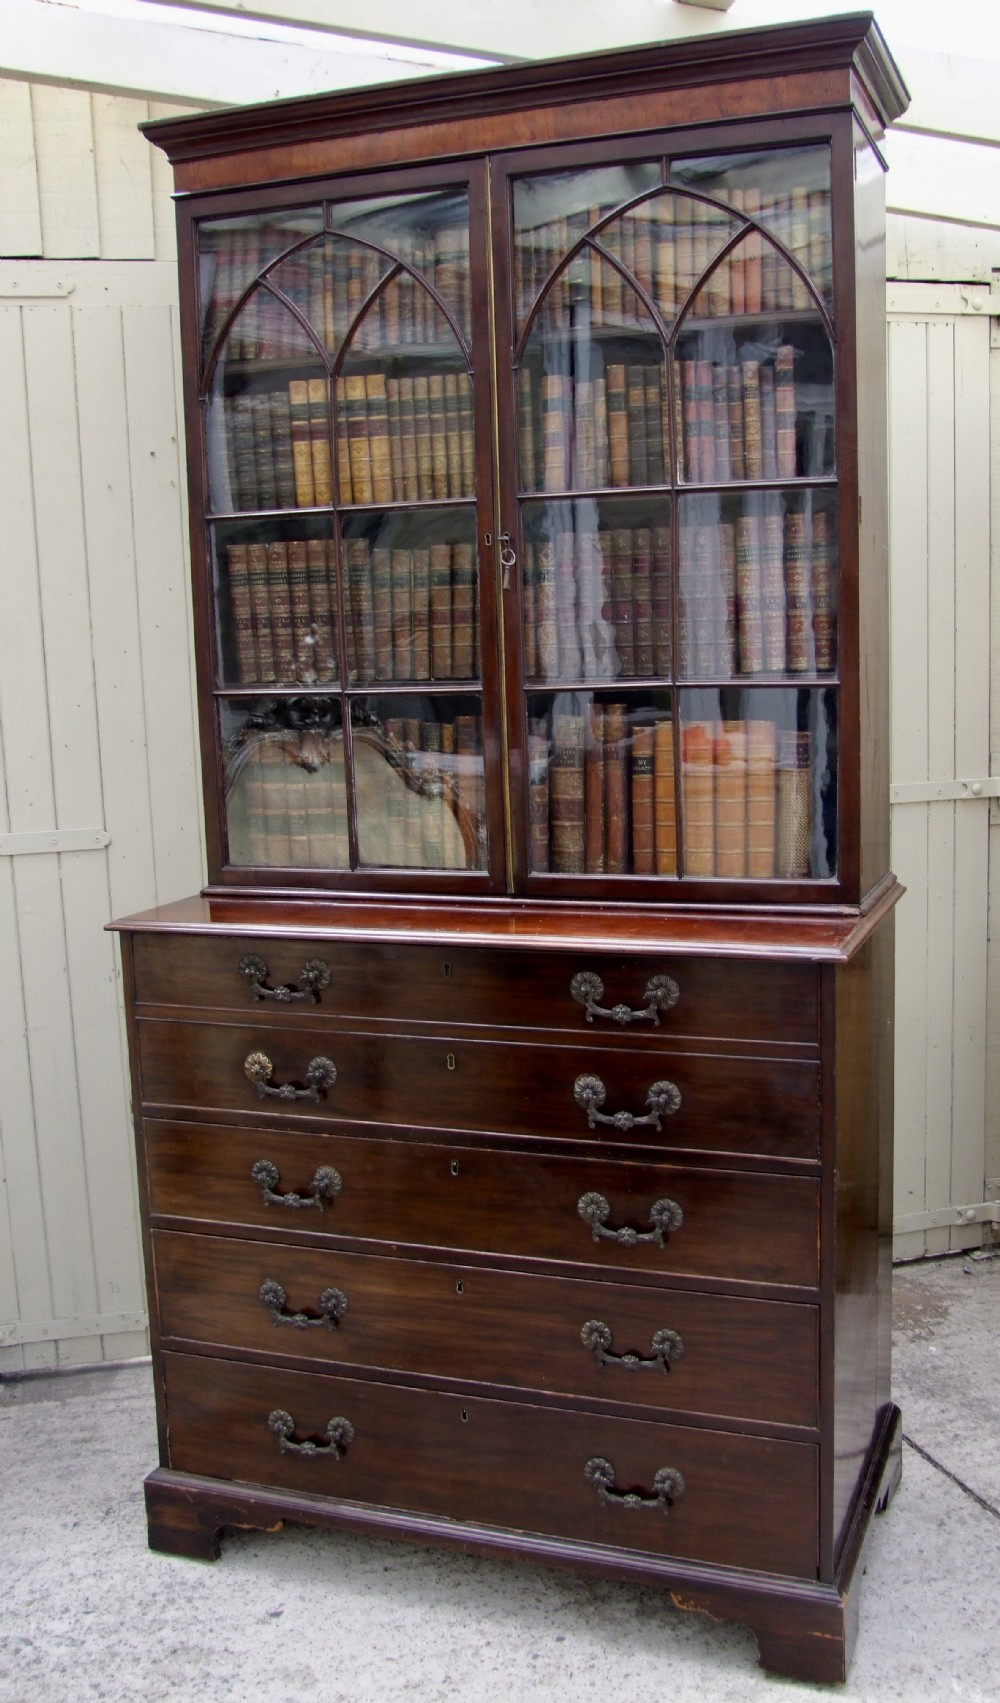 early 19th century sectetaire bookcase in mahogany